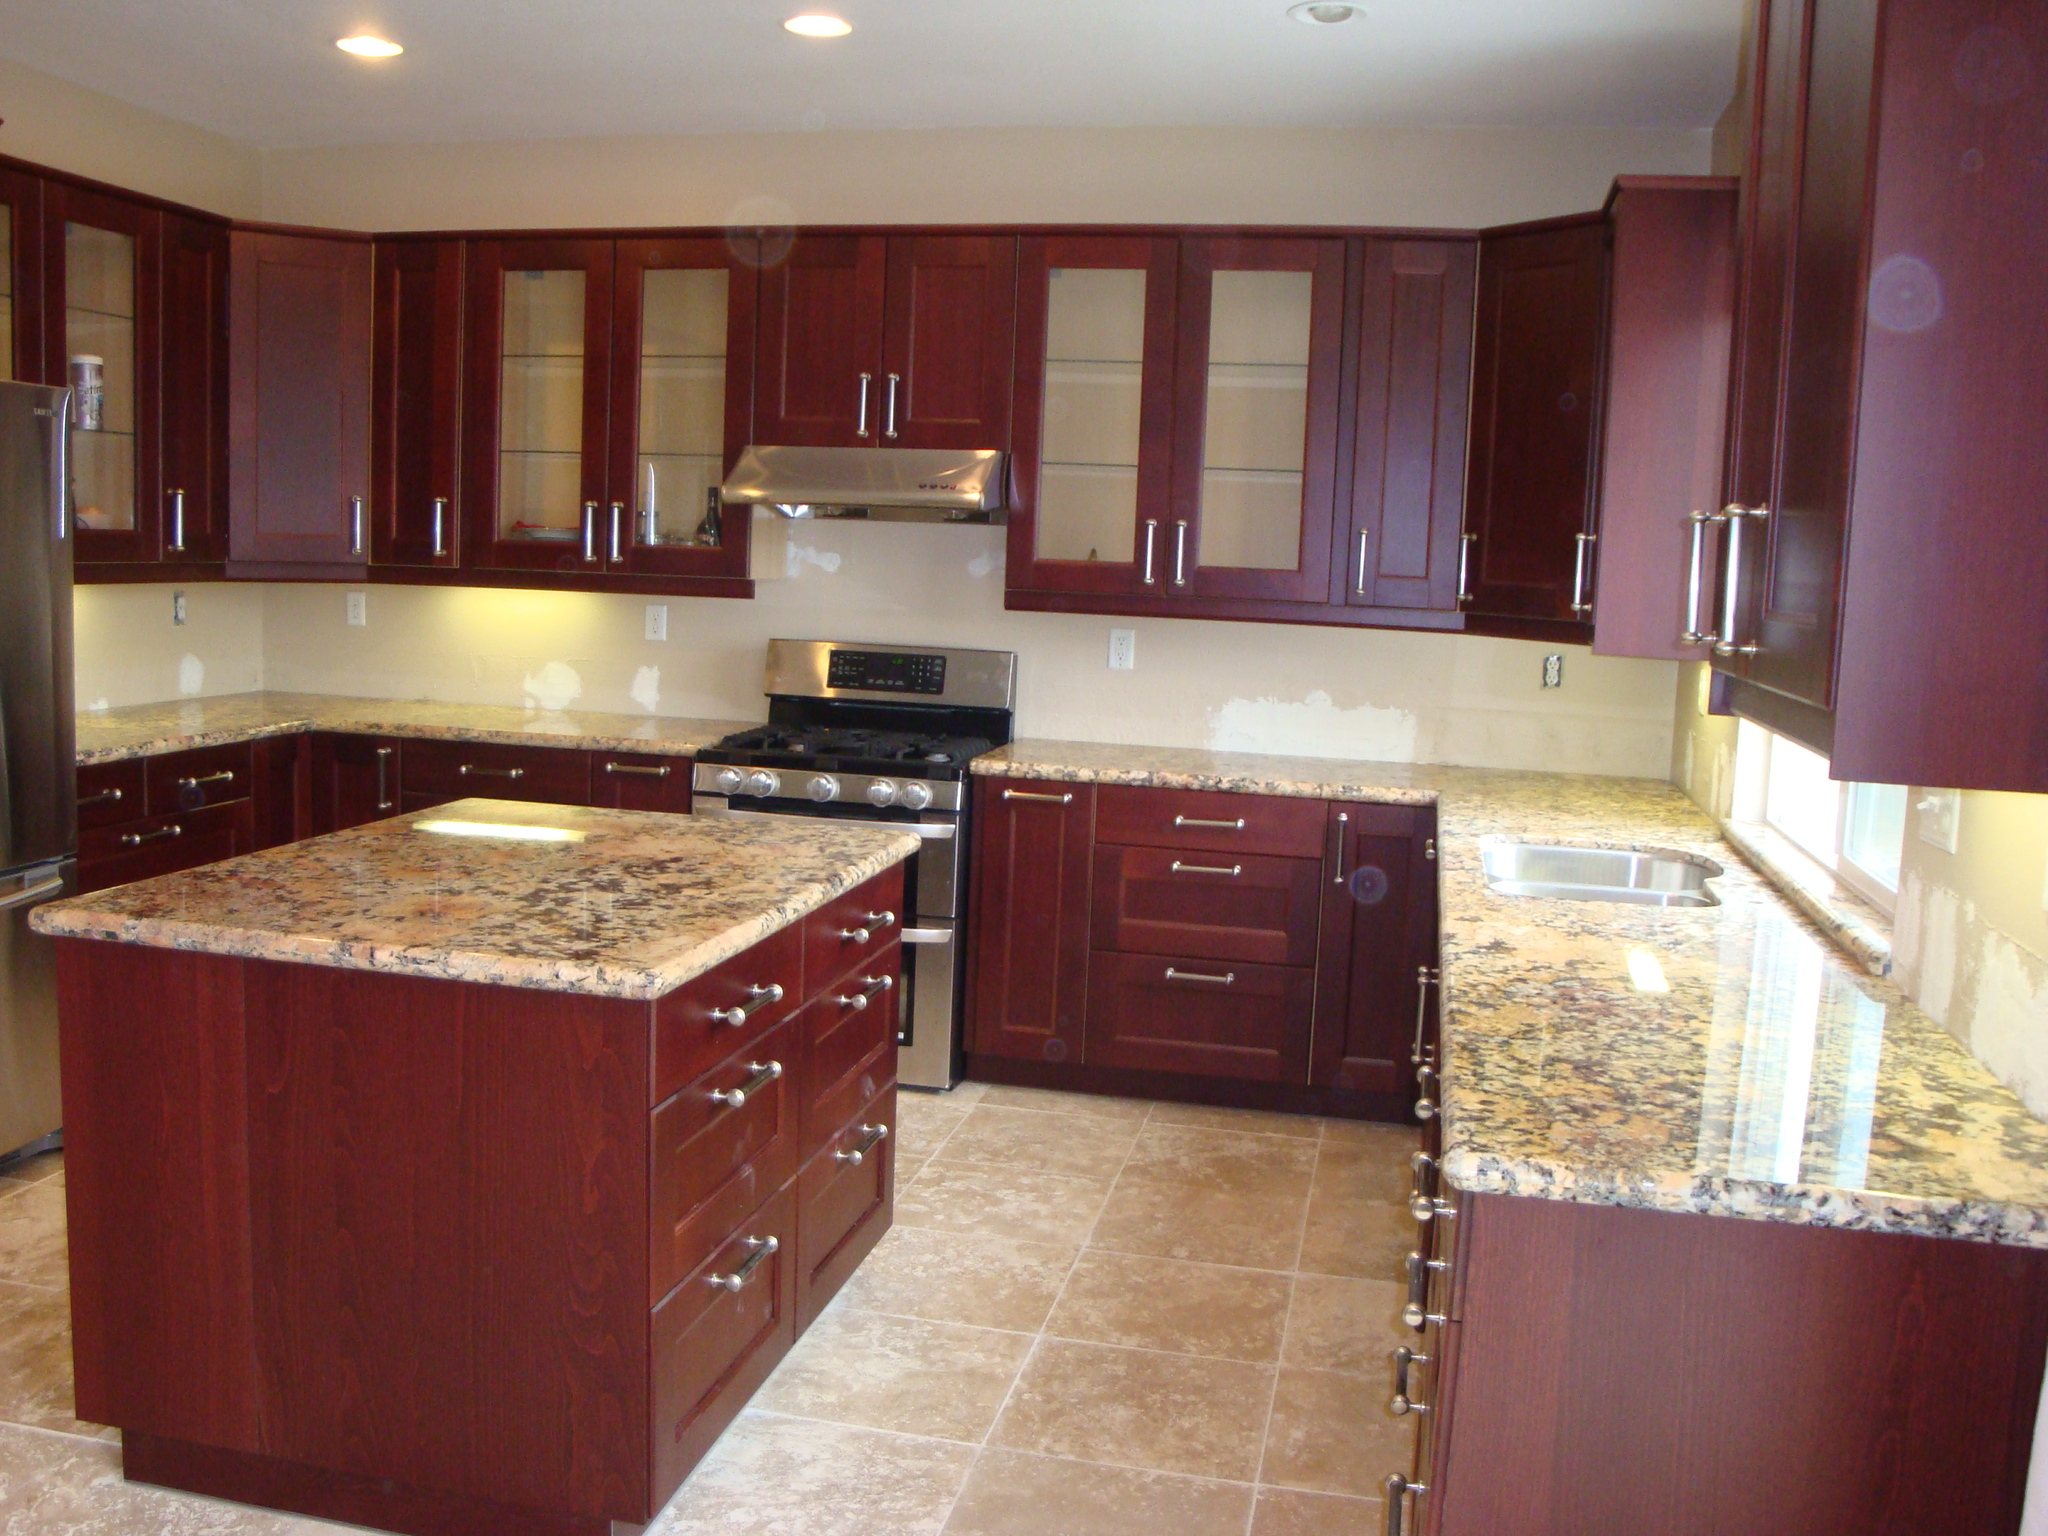 Emerald Pearl Granite Kitchen Kitchen Remodel Archives Page 2 Of 3 Granite Kitchen Bath